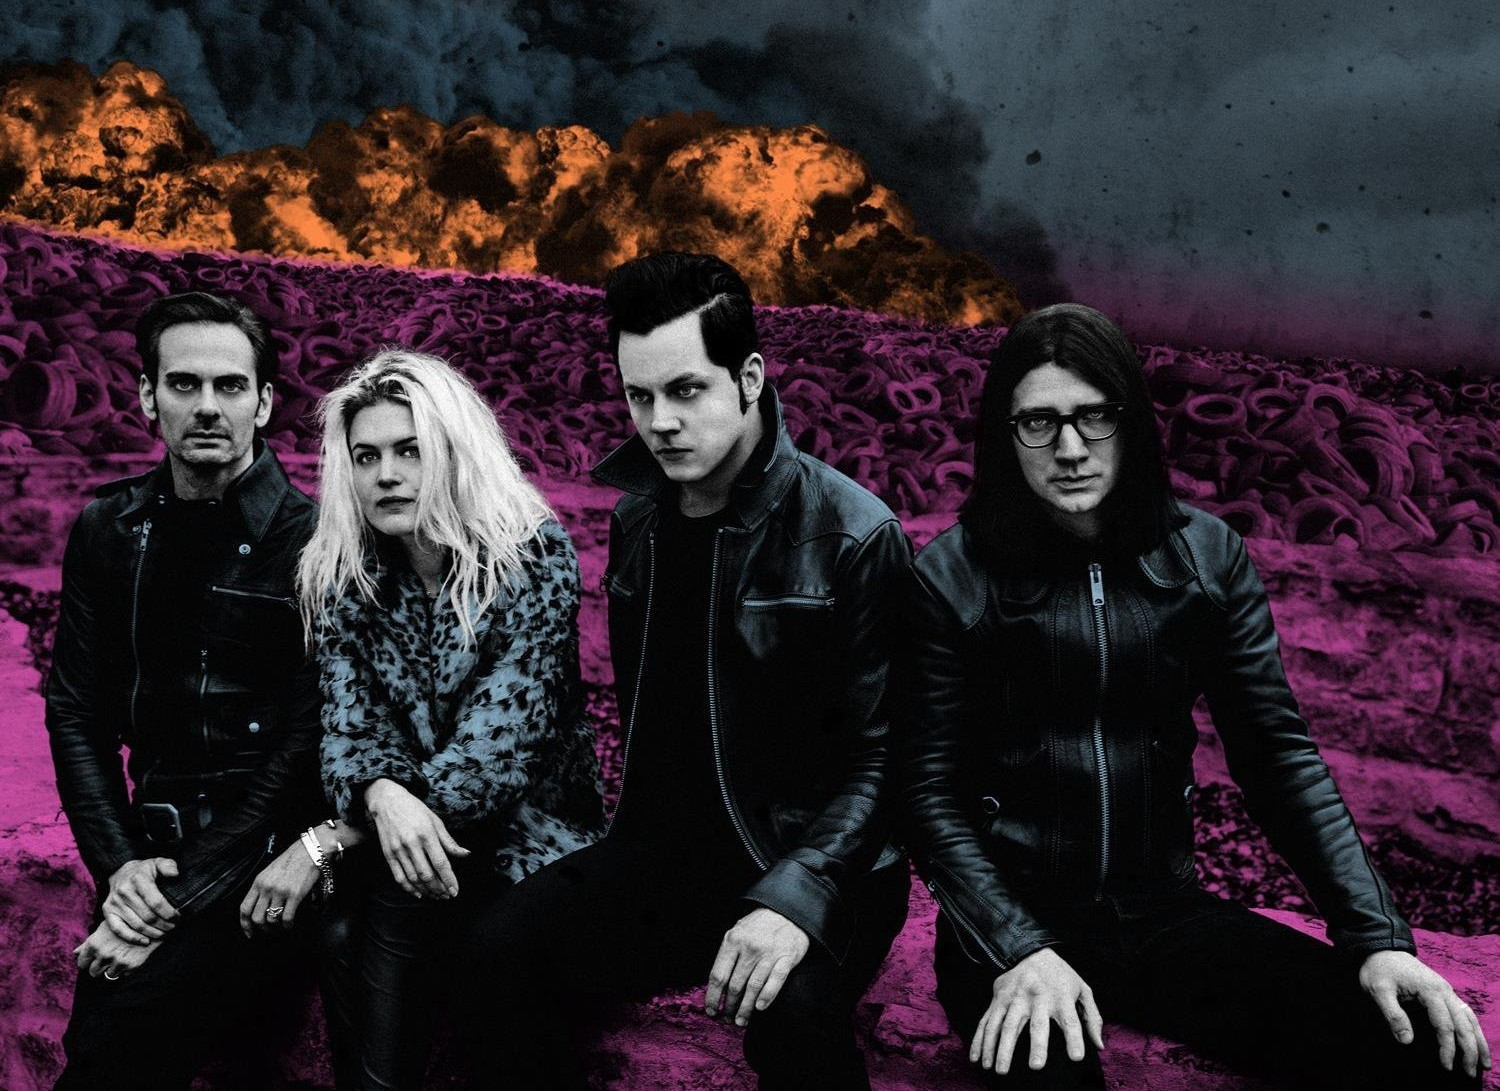 Review of the new Dead Weather album 'Dodge and Burn', the LP comes out September 25th via Jack White's Third Man Records.